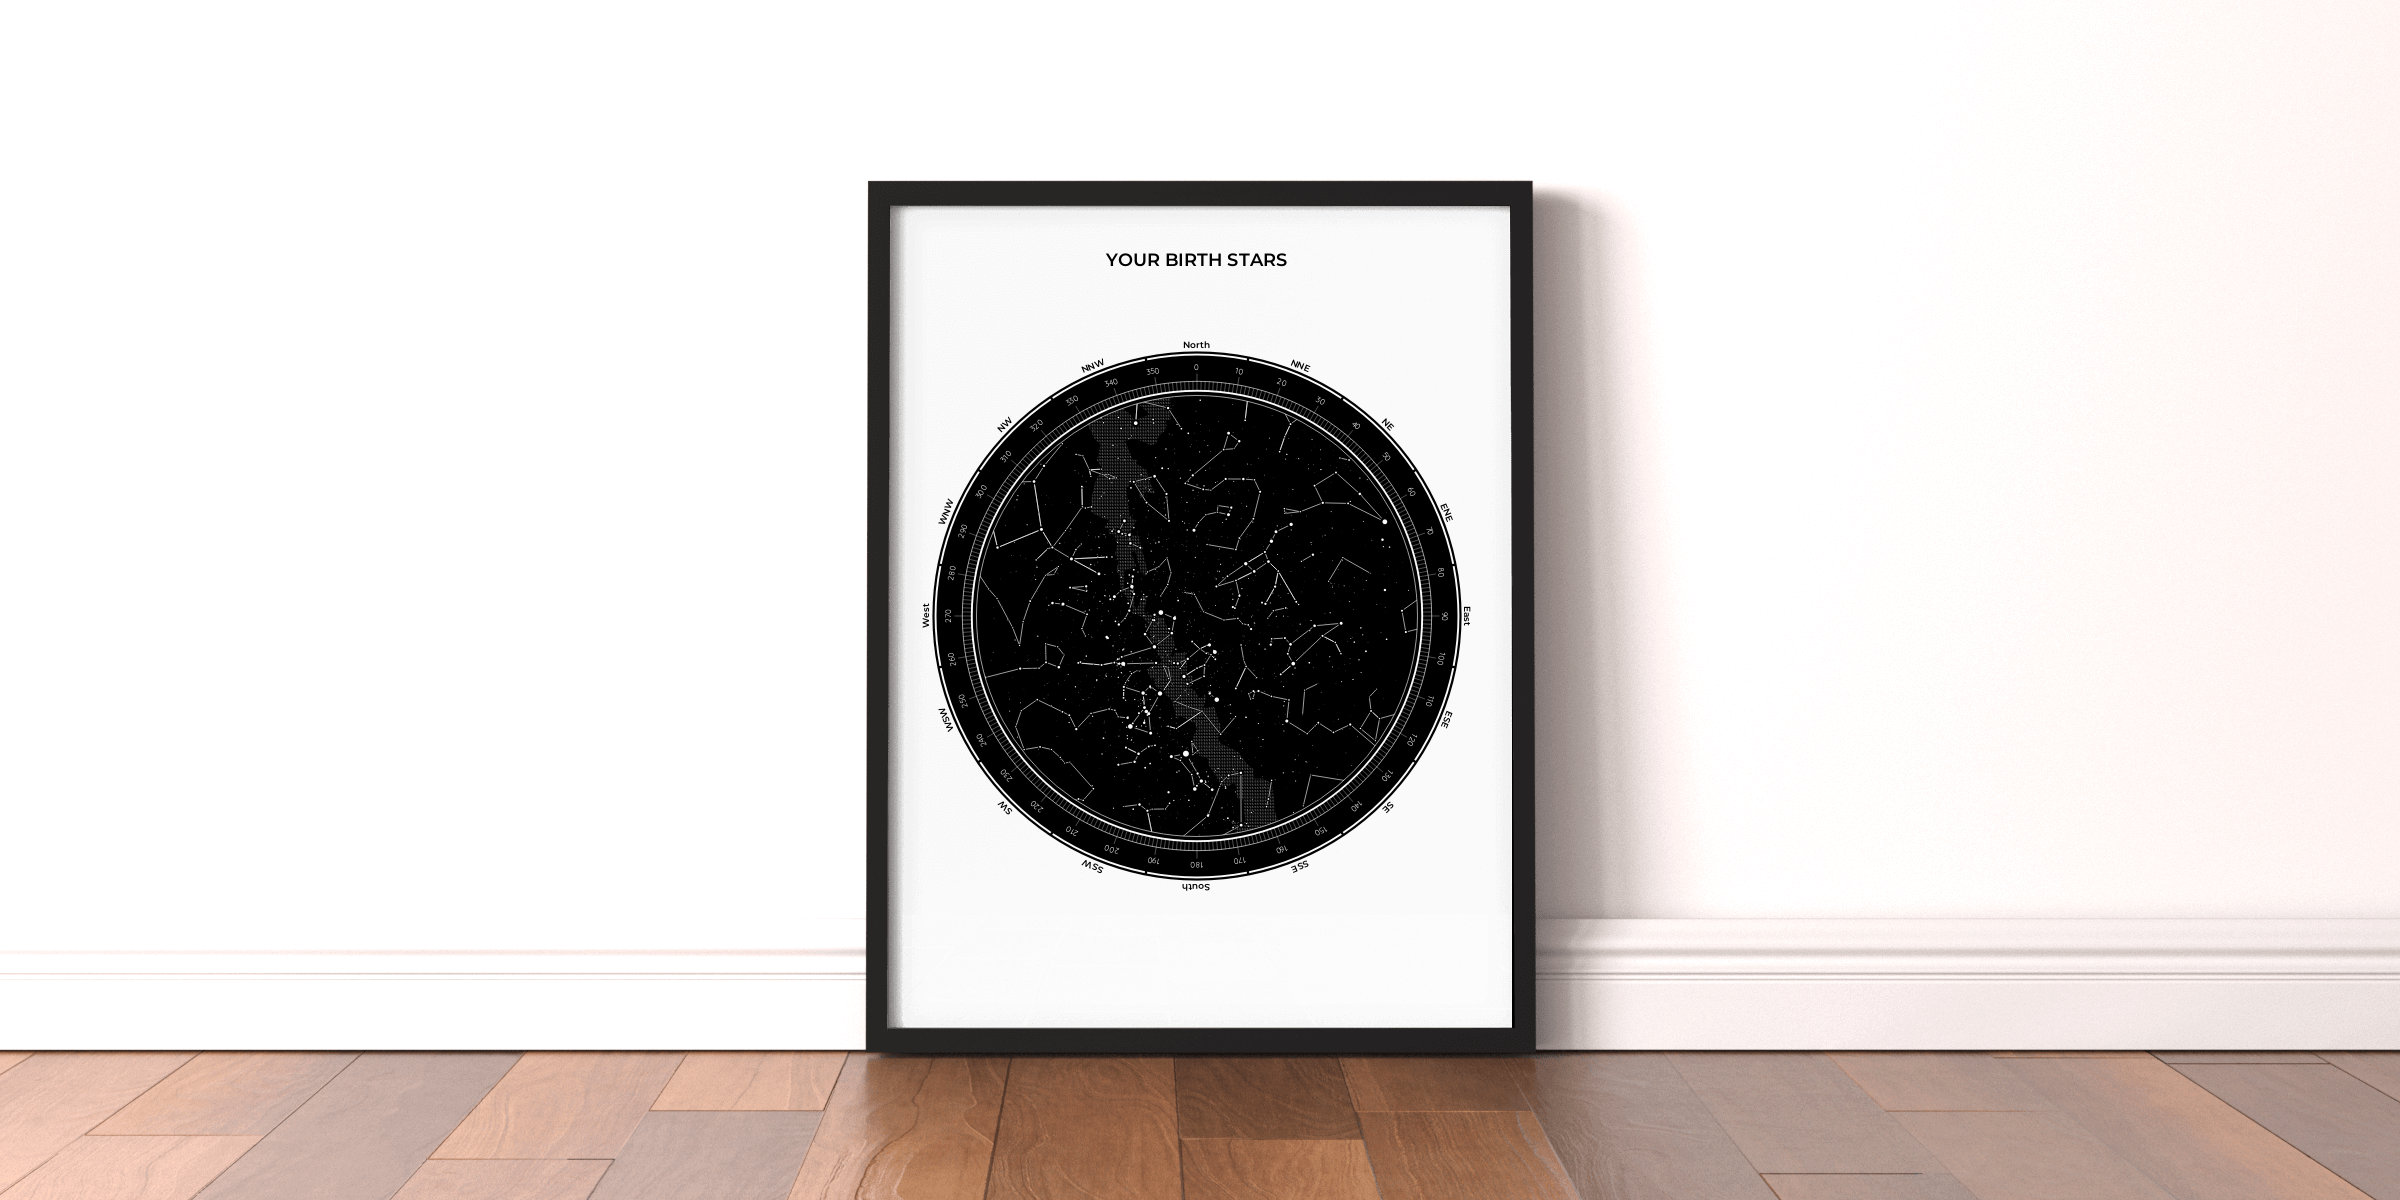 Possibly the best baby shower gift - a star map poster